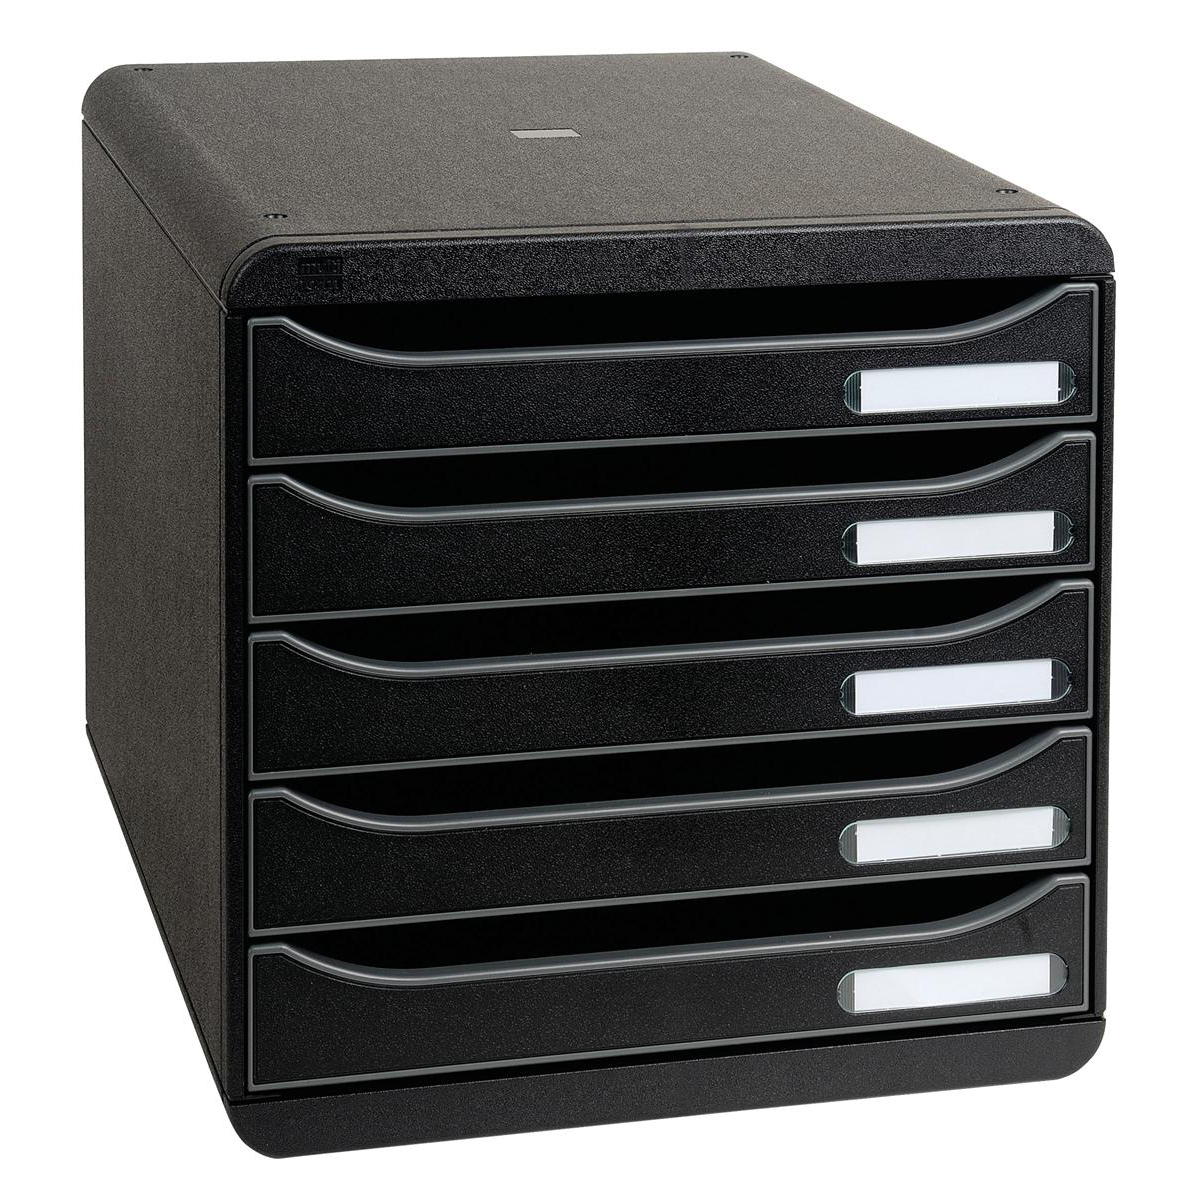 Desktop trays or organizers Exacompta Big Box Plus 5 Drawer Set Plastic H43mm A4plus Black Ref 309714D